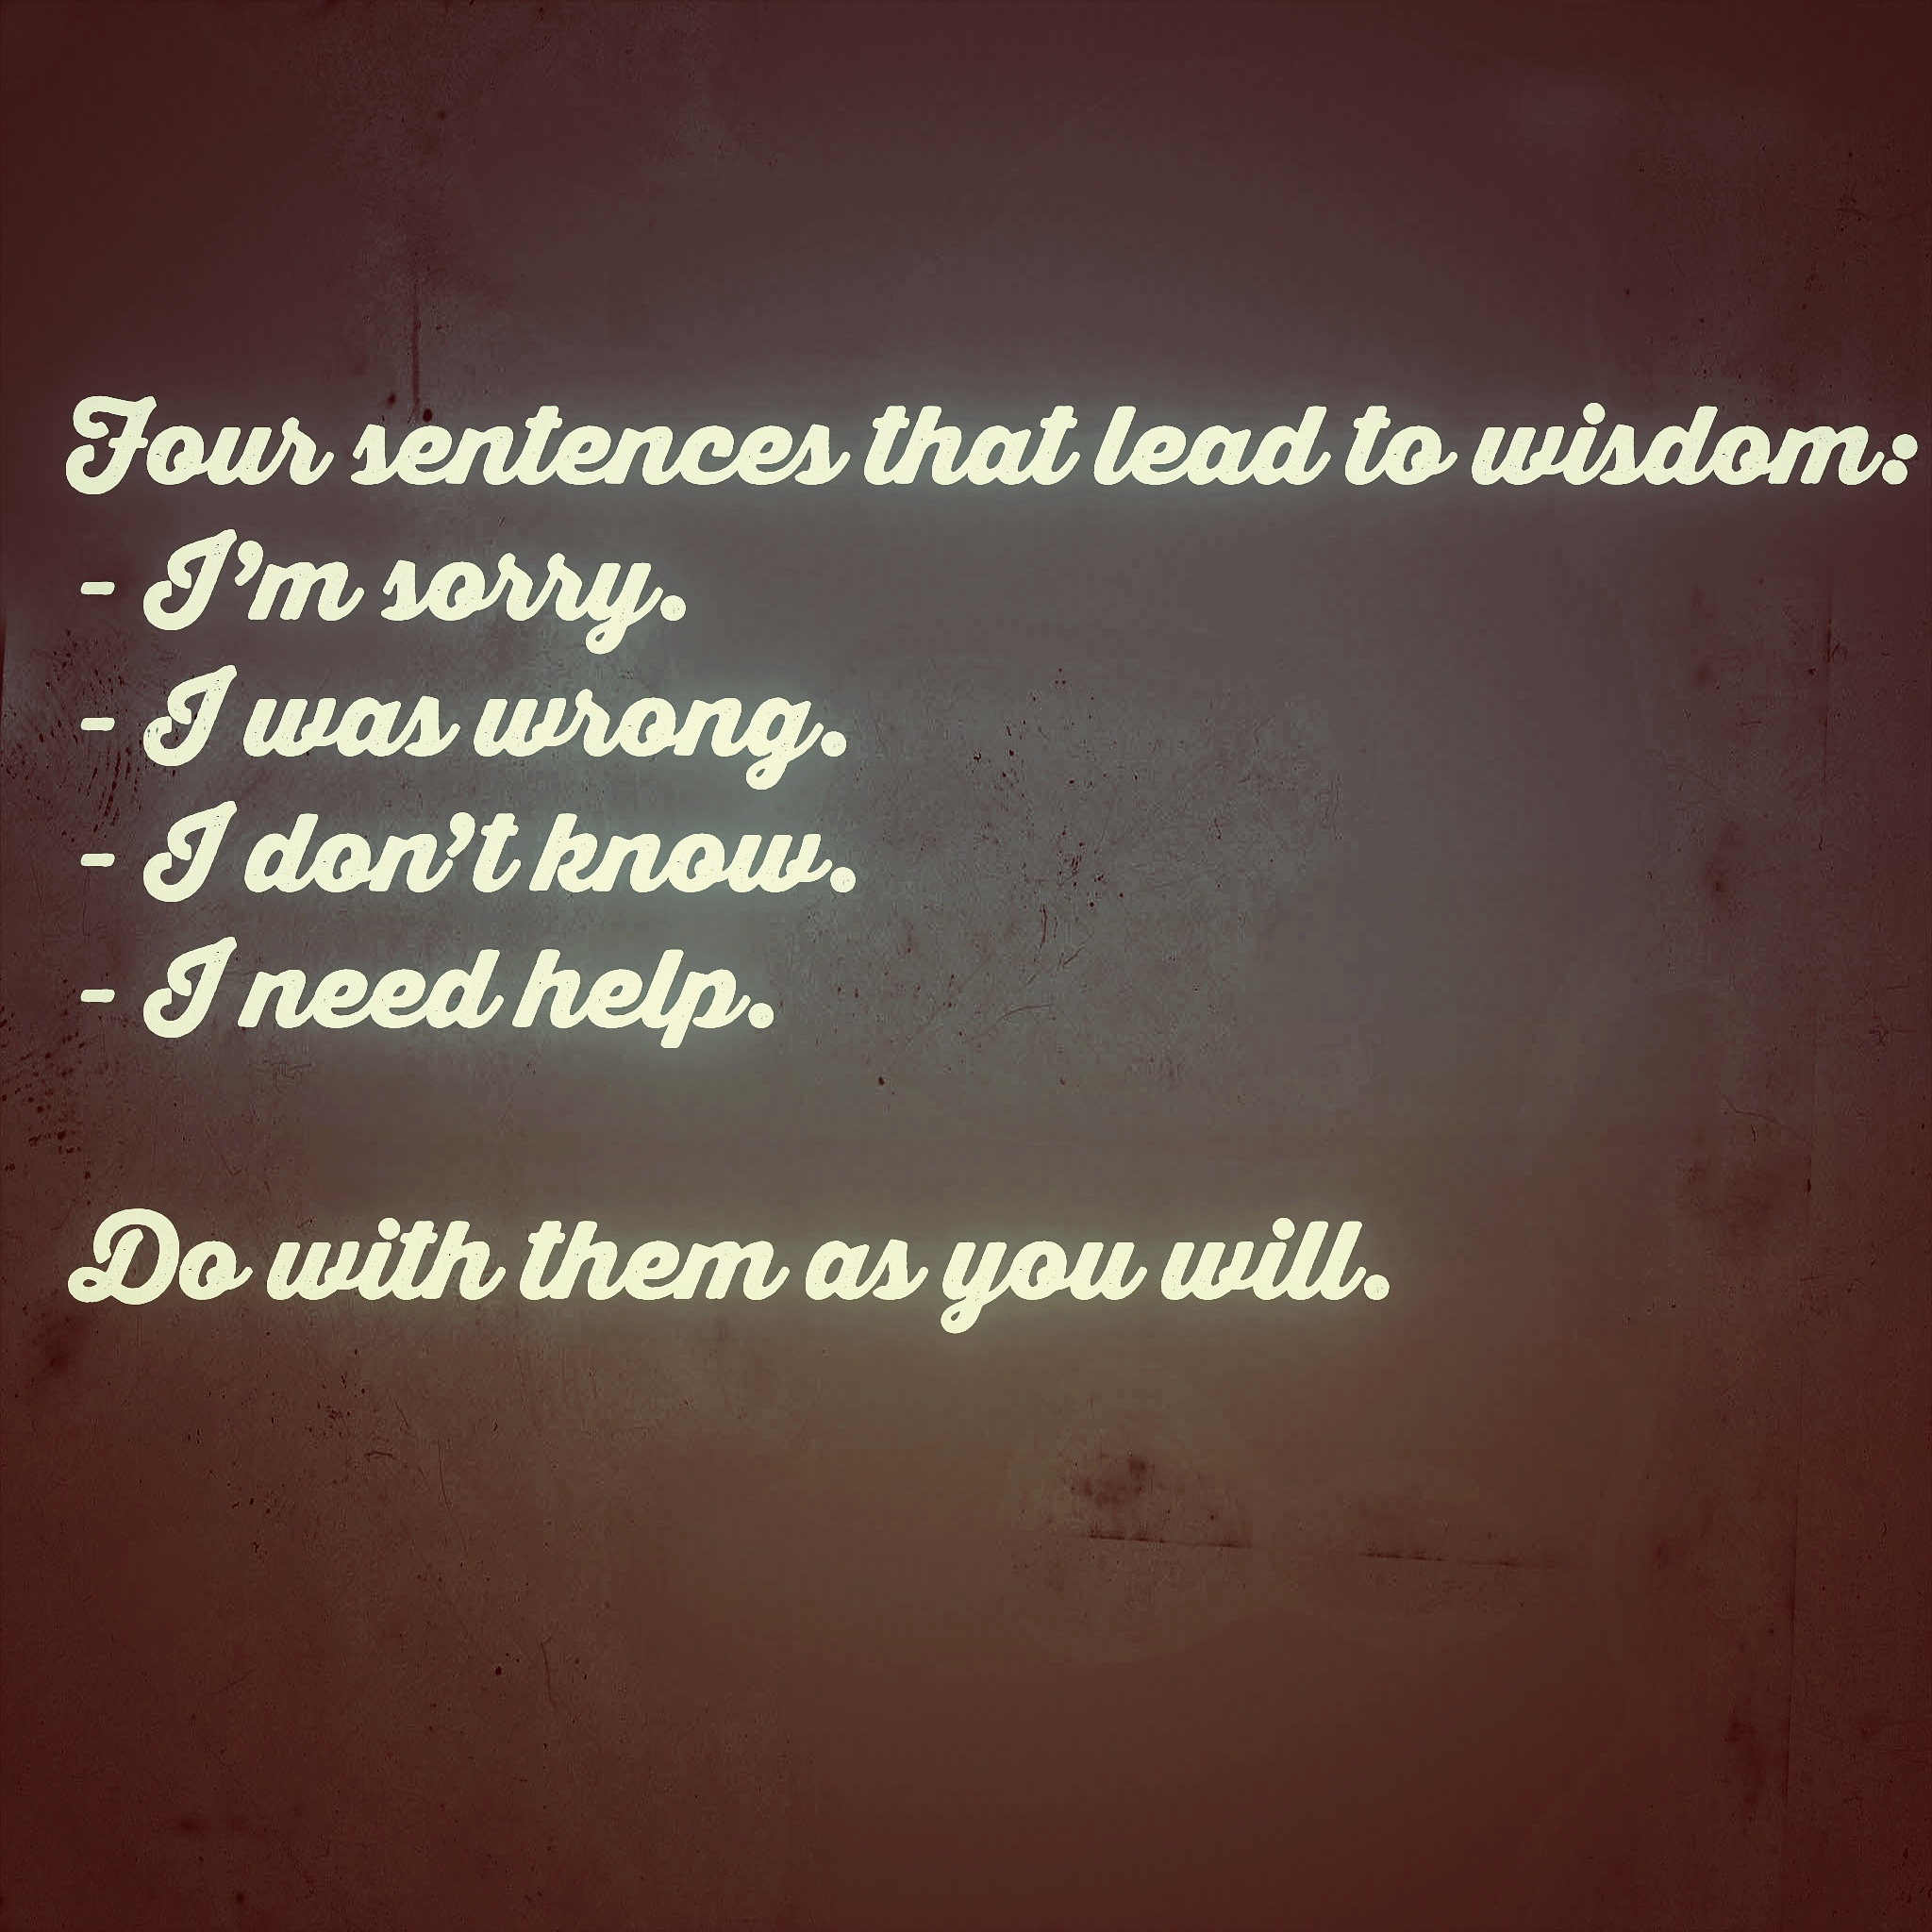 [Image] Four sentences of wisdom shared with us, do with them as you will.. Chart your own path